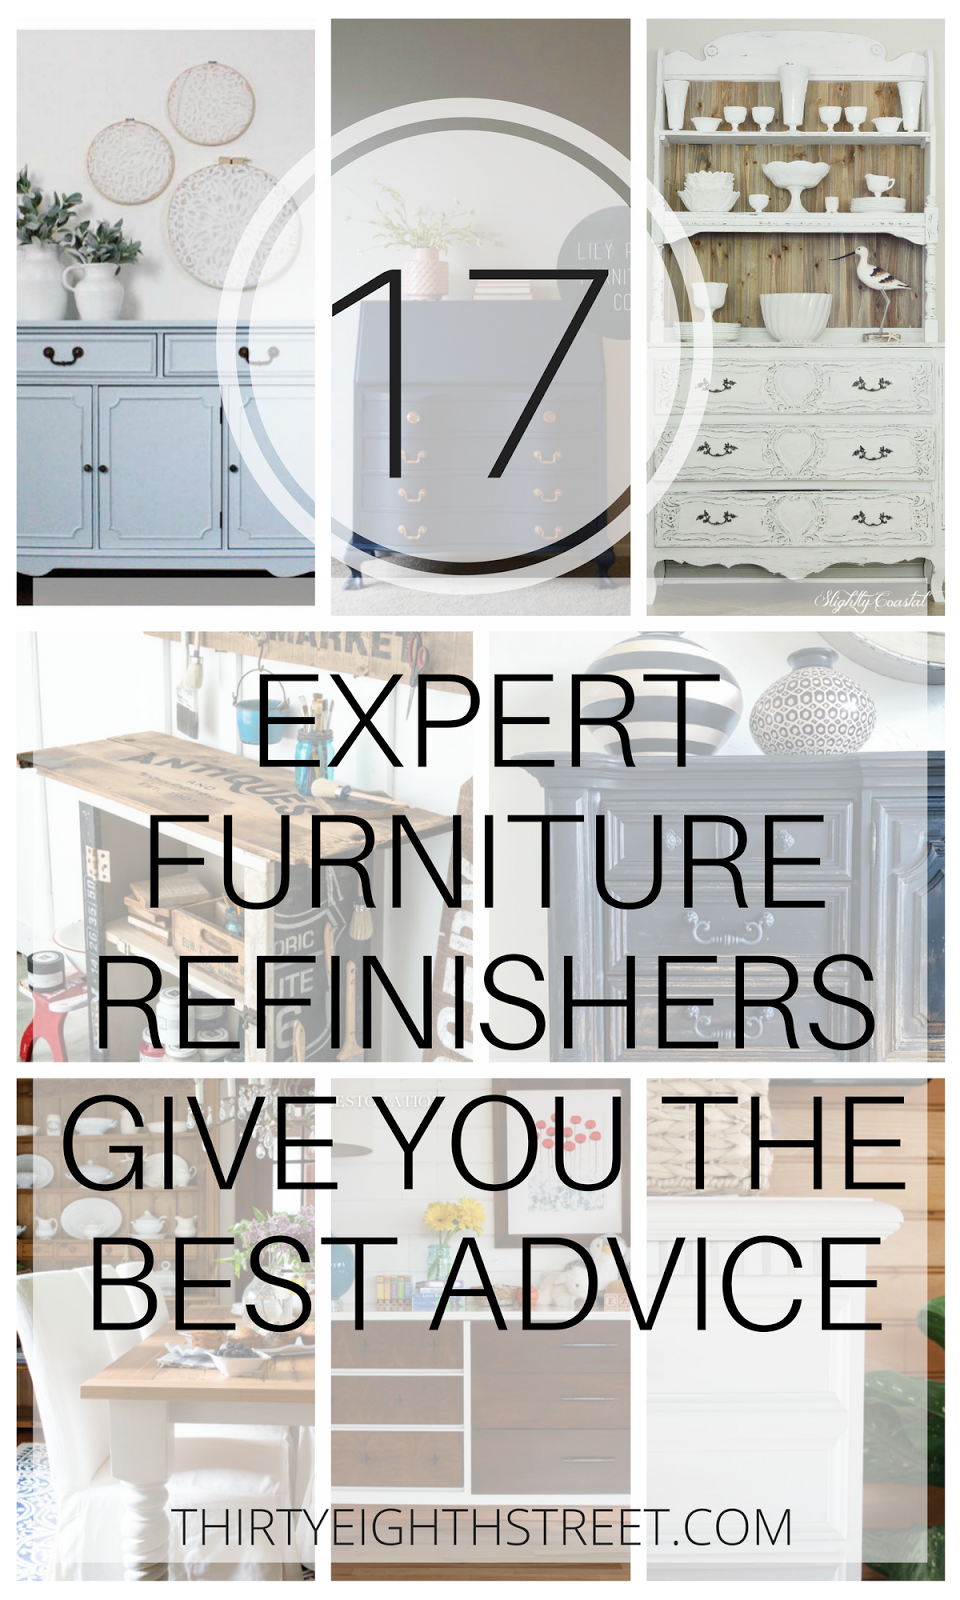 painted furniture, furniture refinishing advice, furniture refinishing tips, furniture refinishing tutorials, diy furniture, chalk painted furniture, furniture artists, best diy furniture, diy furniture tips and tricks